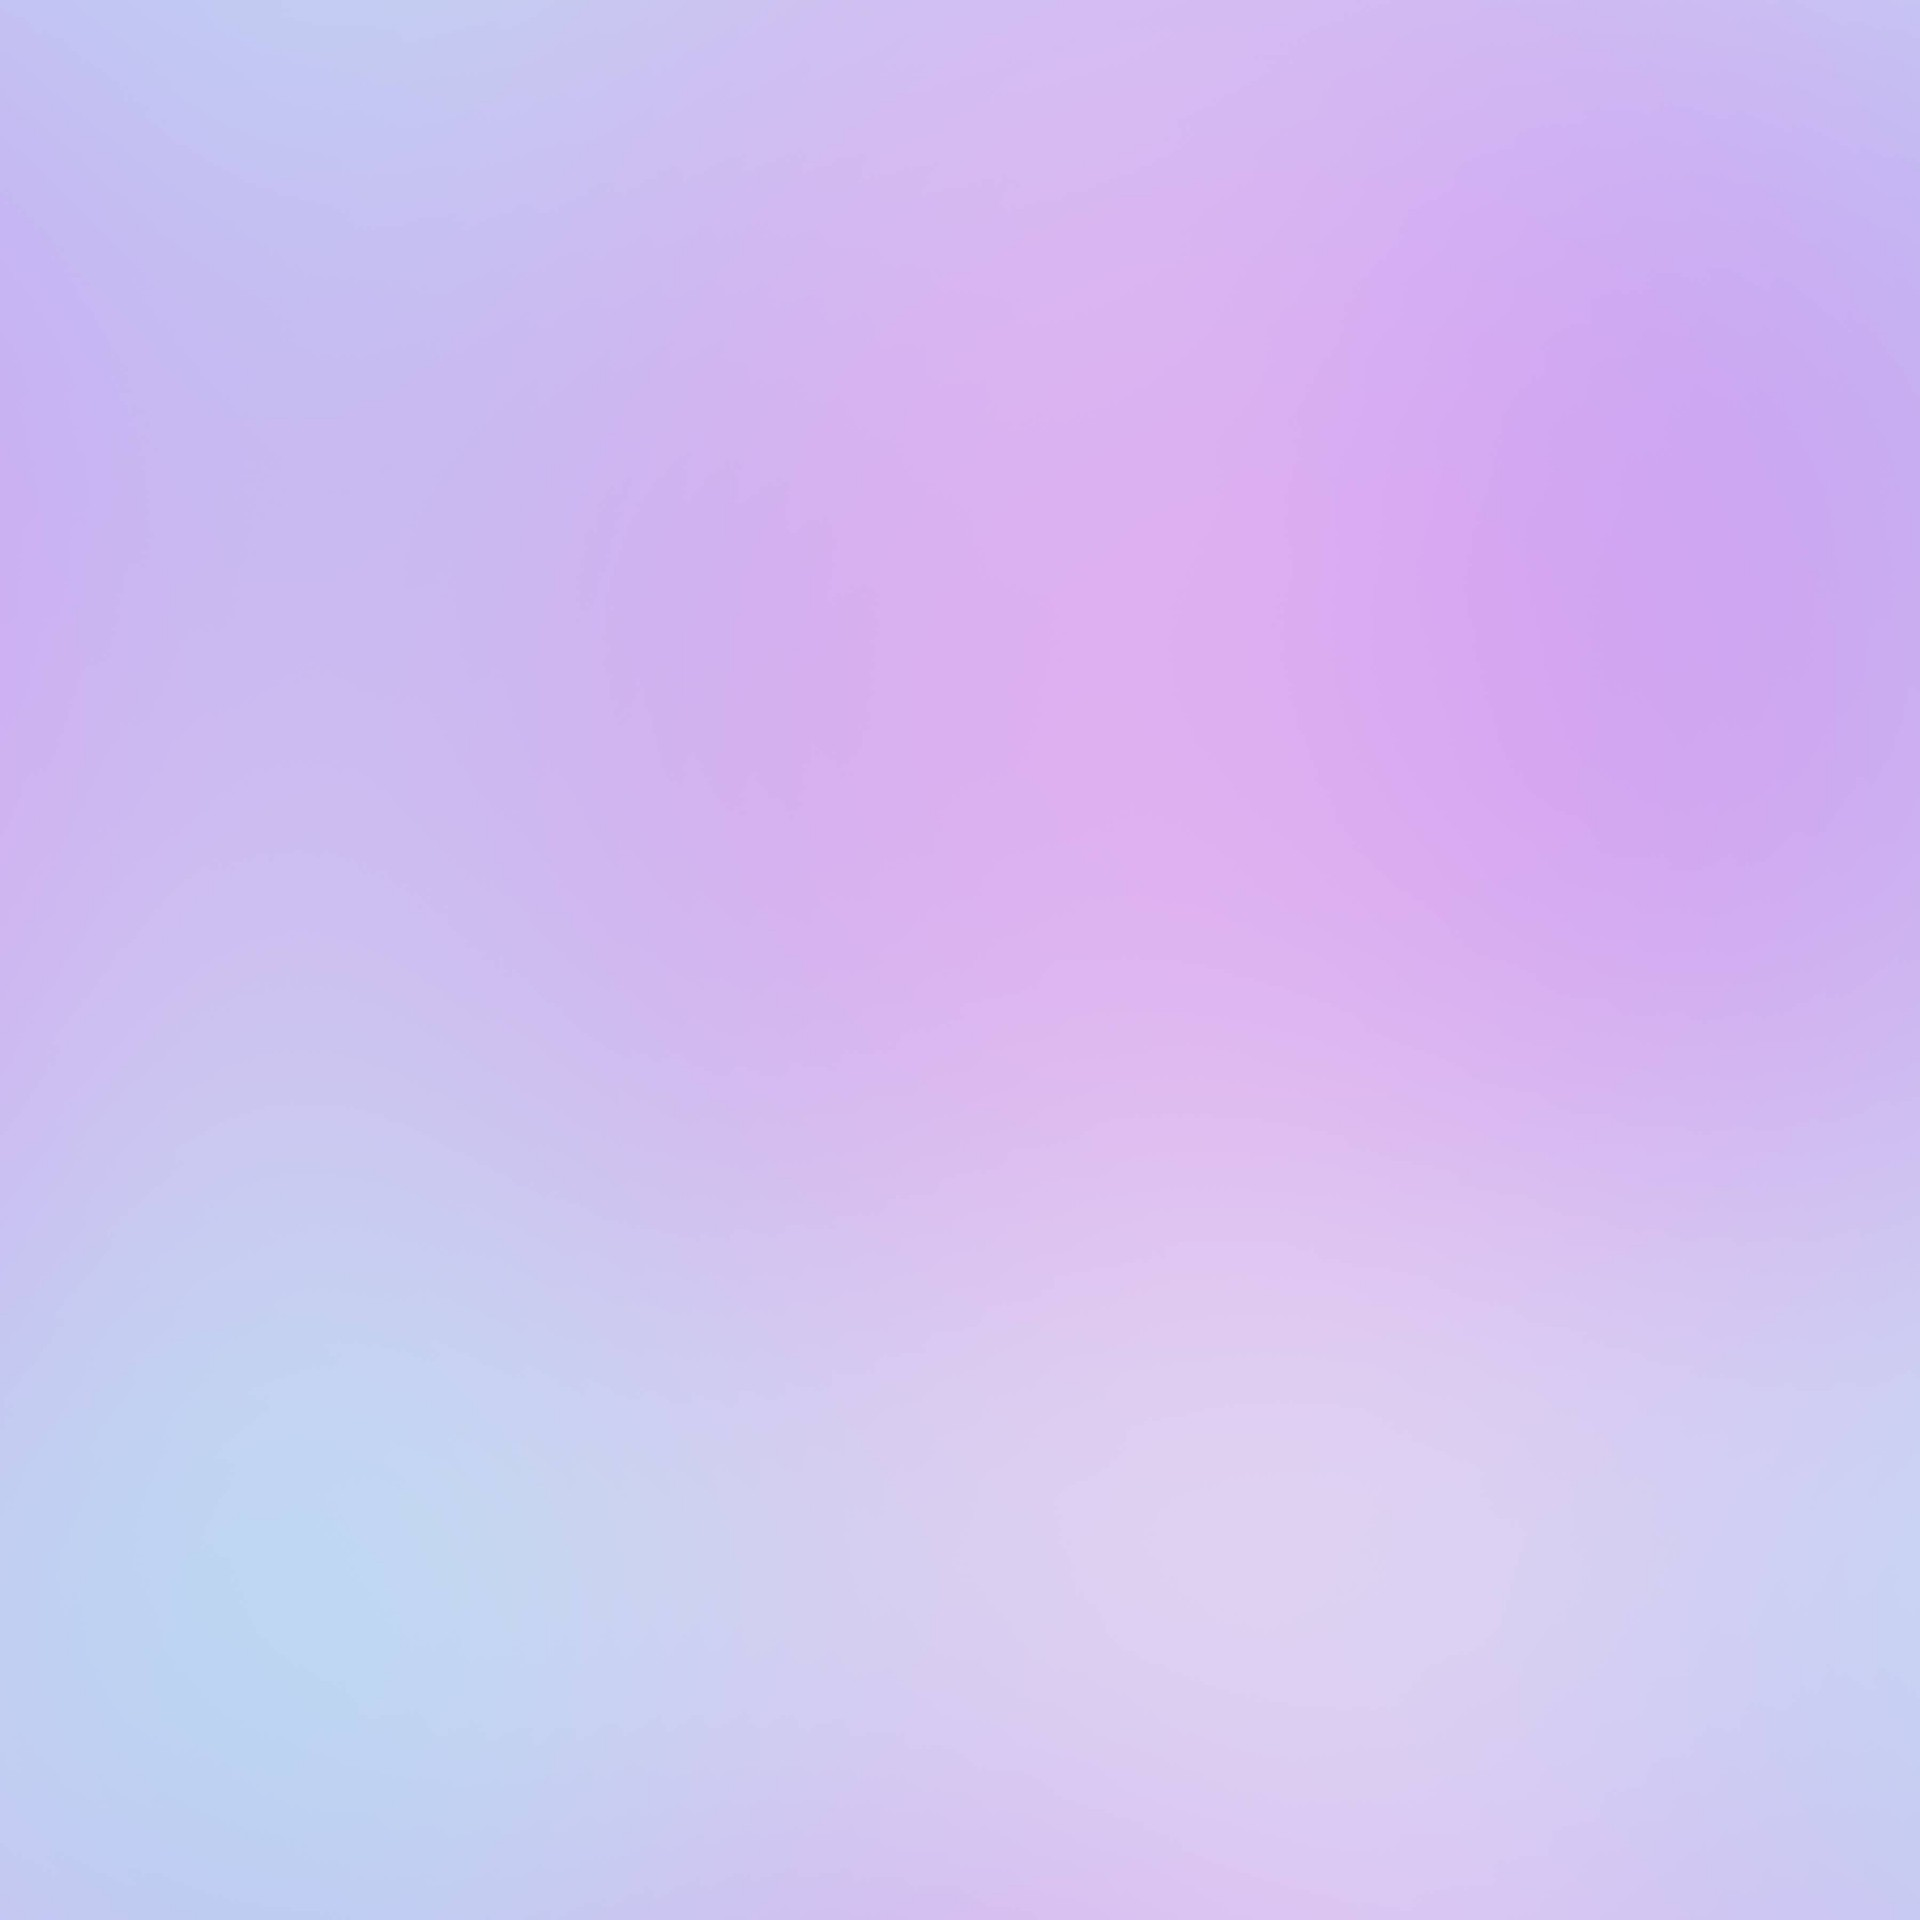 Wallpaper Lila Background Lilac 4 Free Stock Photo Public Domain Pictures